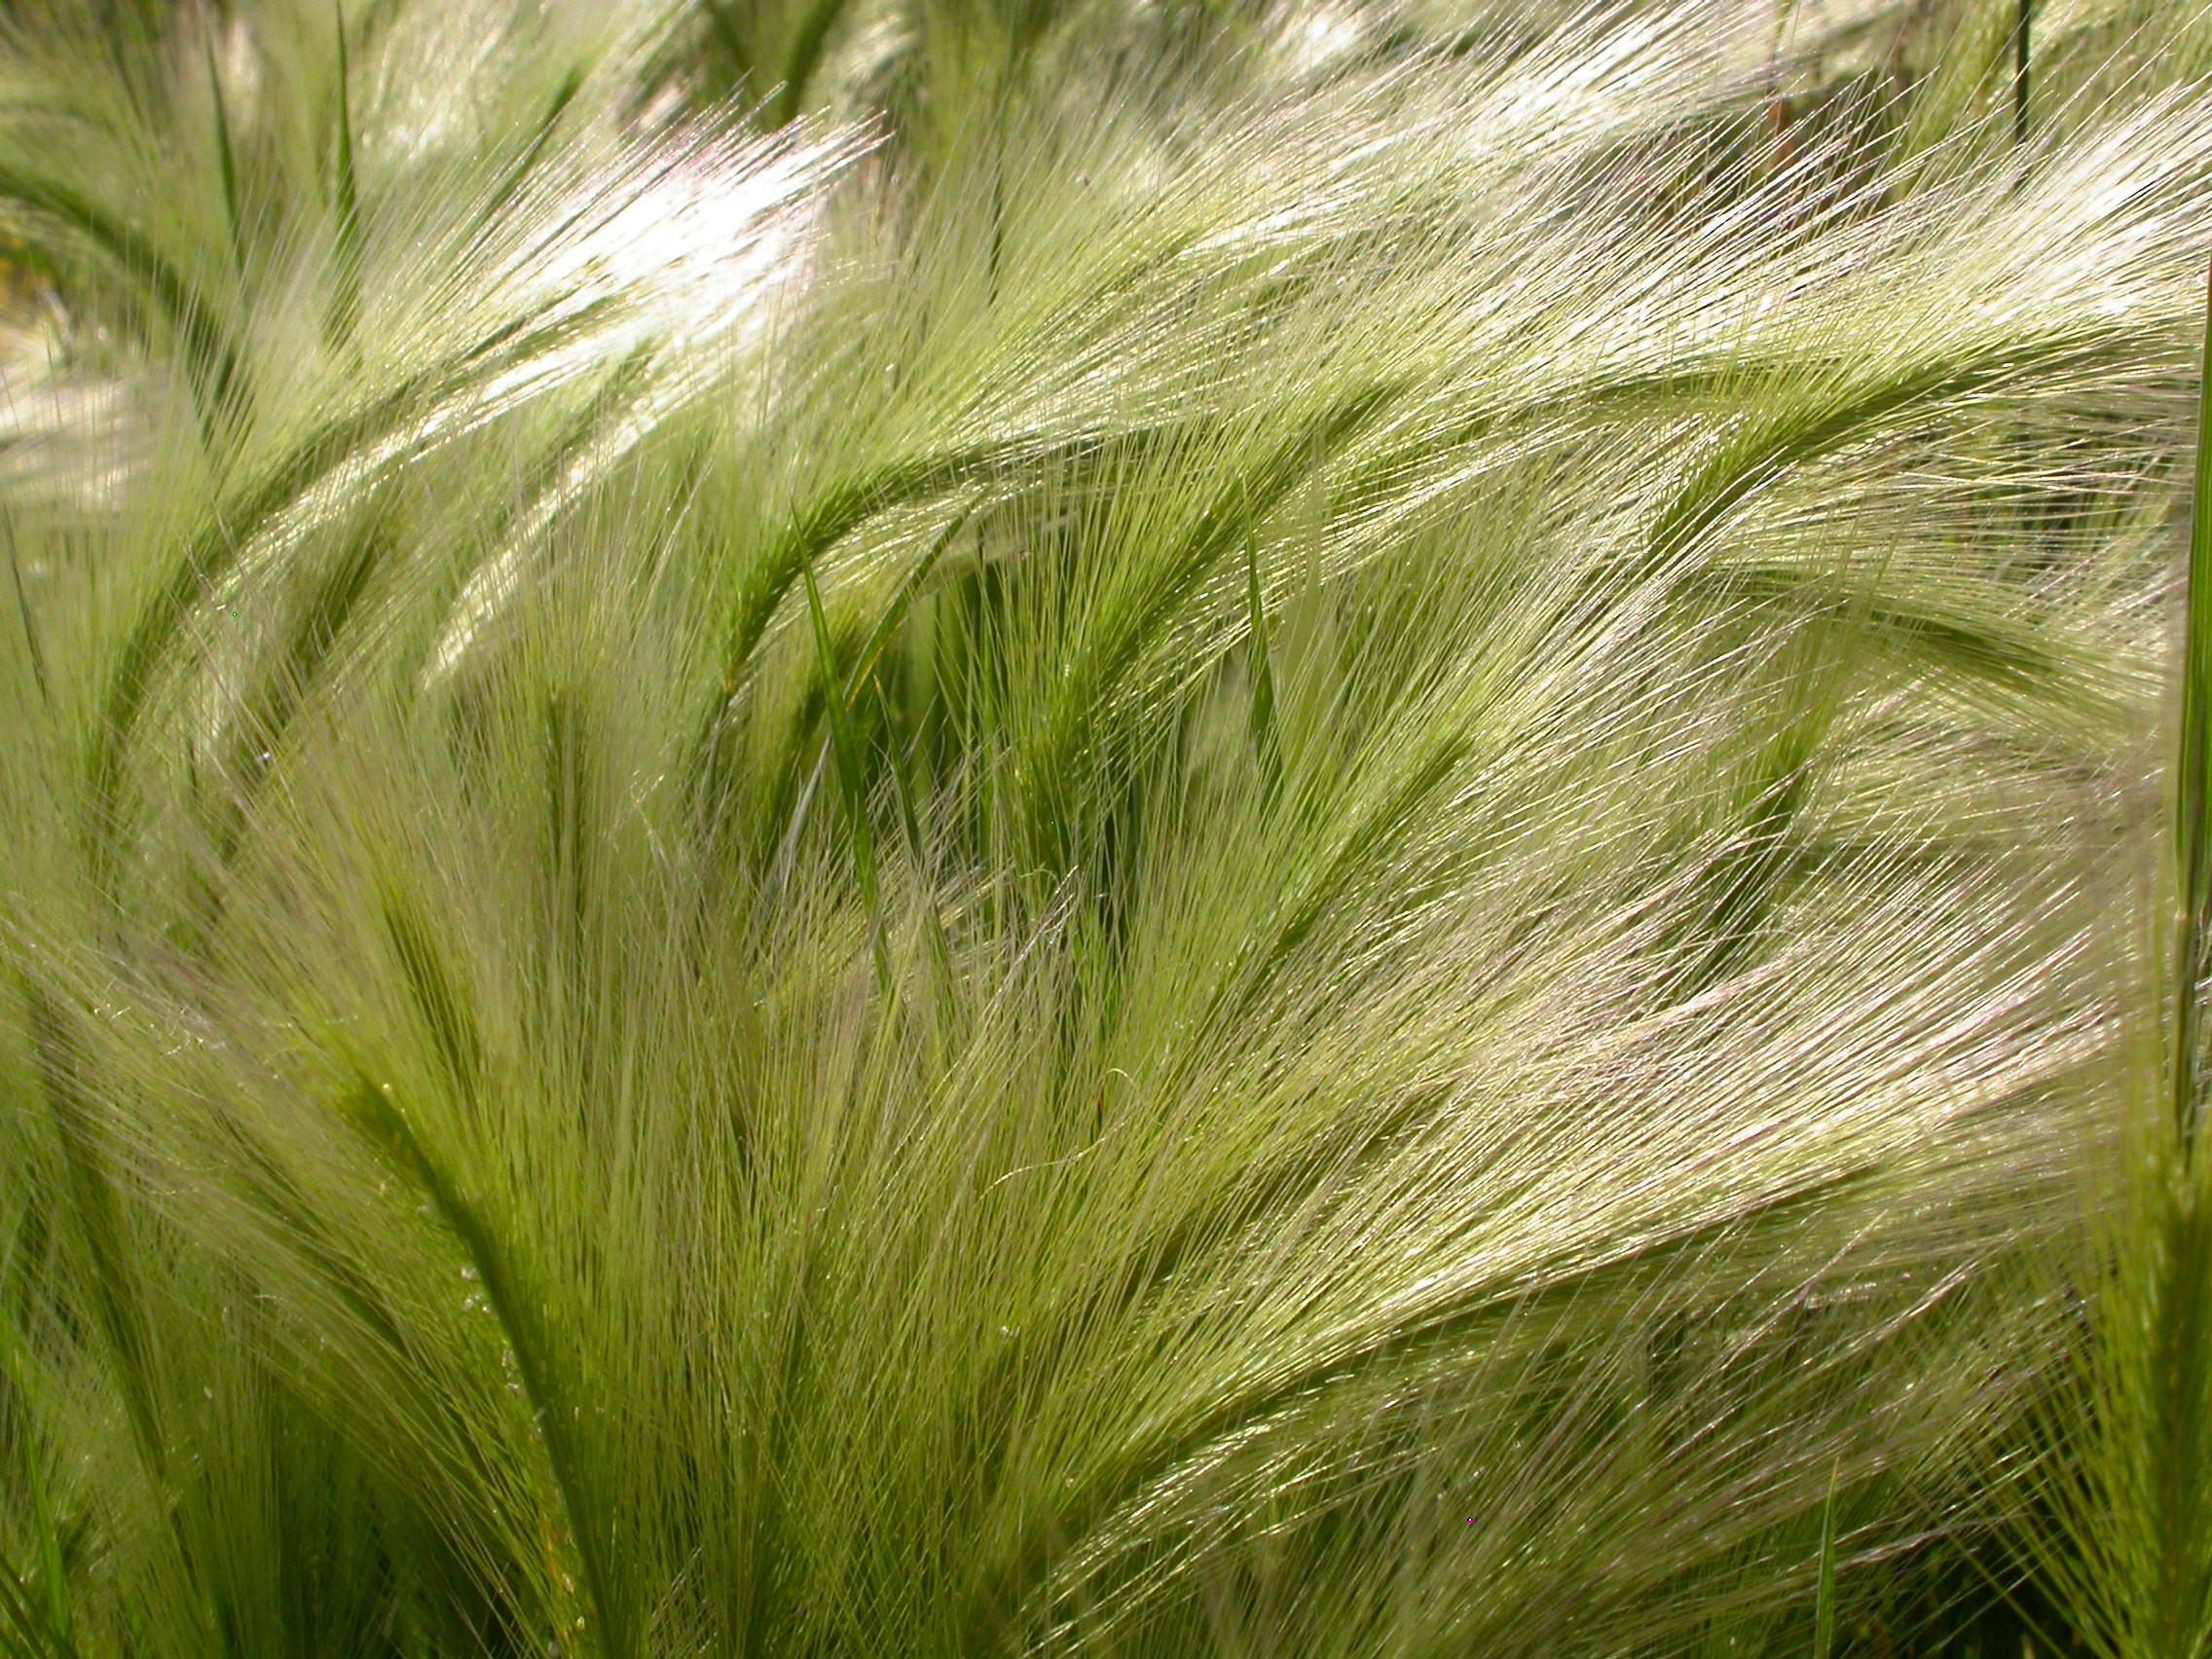 By Matt Lavin from Bozeman, Montana, USA (Hordeum jubatum Uploaded by Jacopo Werther) [CC BY-SA 2.0 (http://creativecommons.org/licenses/by-sa/2.0)], via Wikimedia Commons